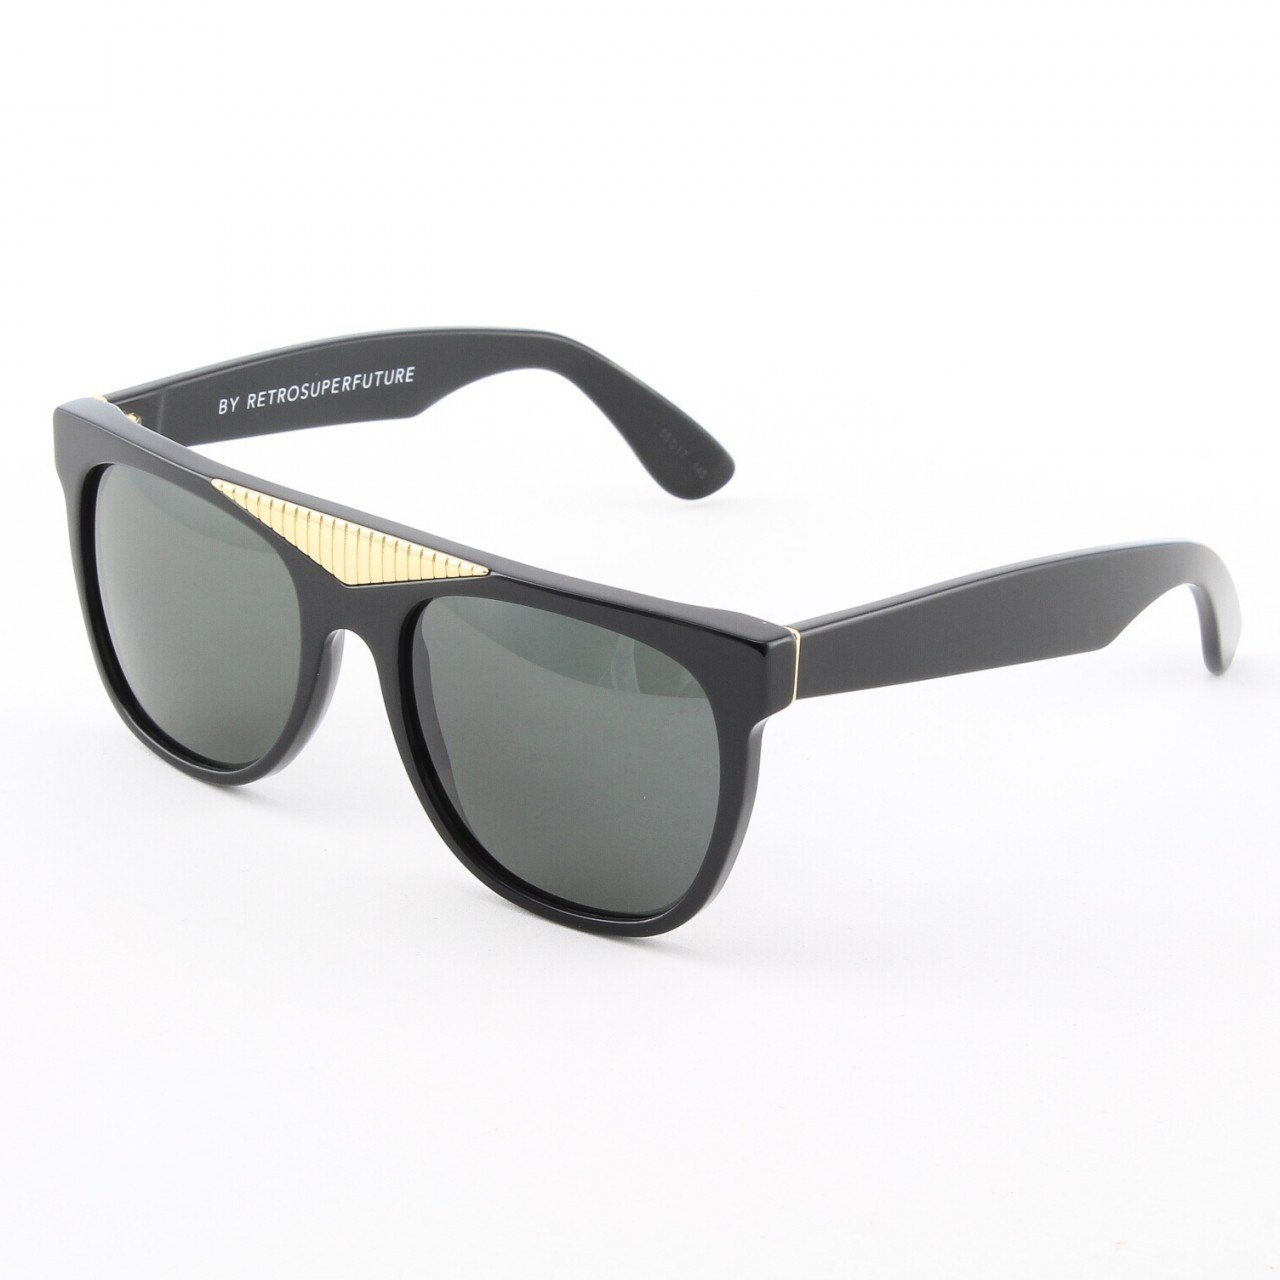 Super Classic 034/3T Sunglasses Black Gold with Black Zeiss Lenses by RETROSUPERFUTURE